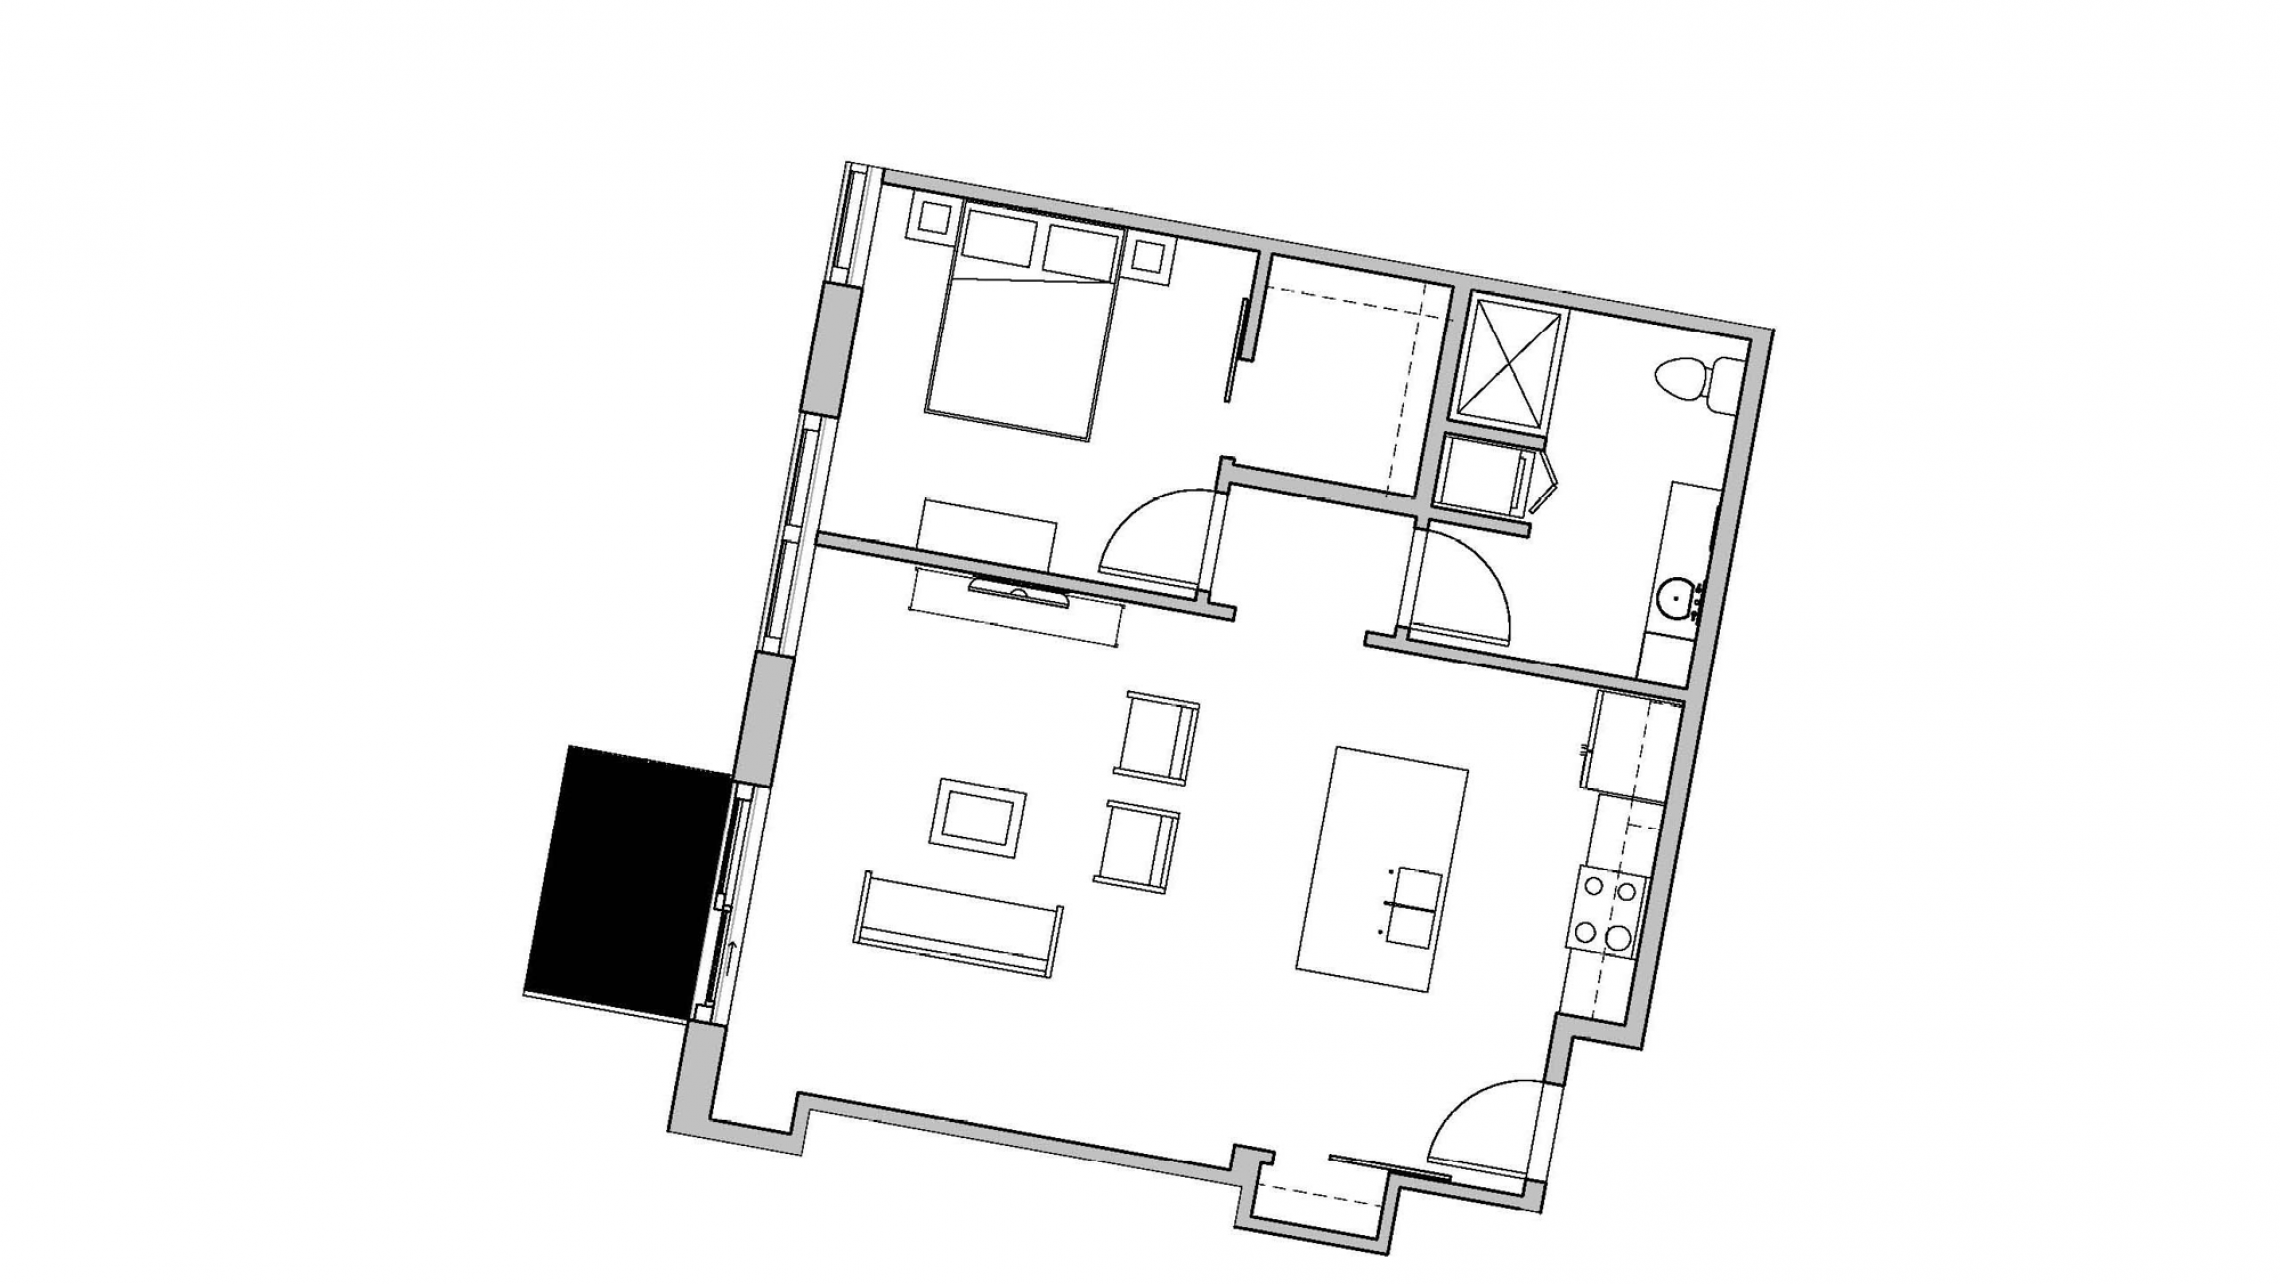 ULI Seven27 435 - One Bedroom, One Bathroom